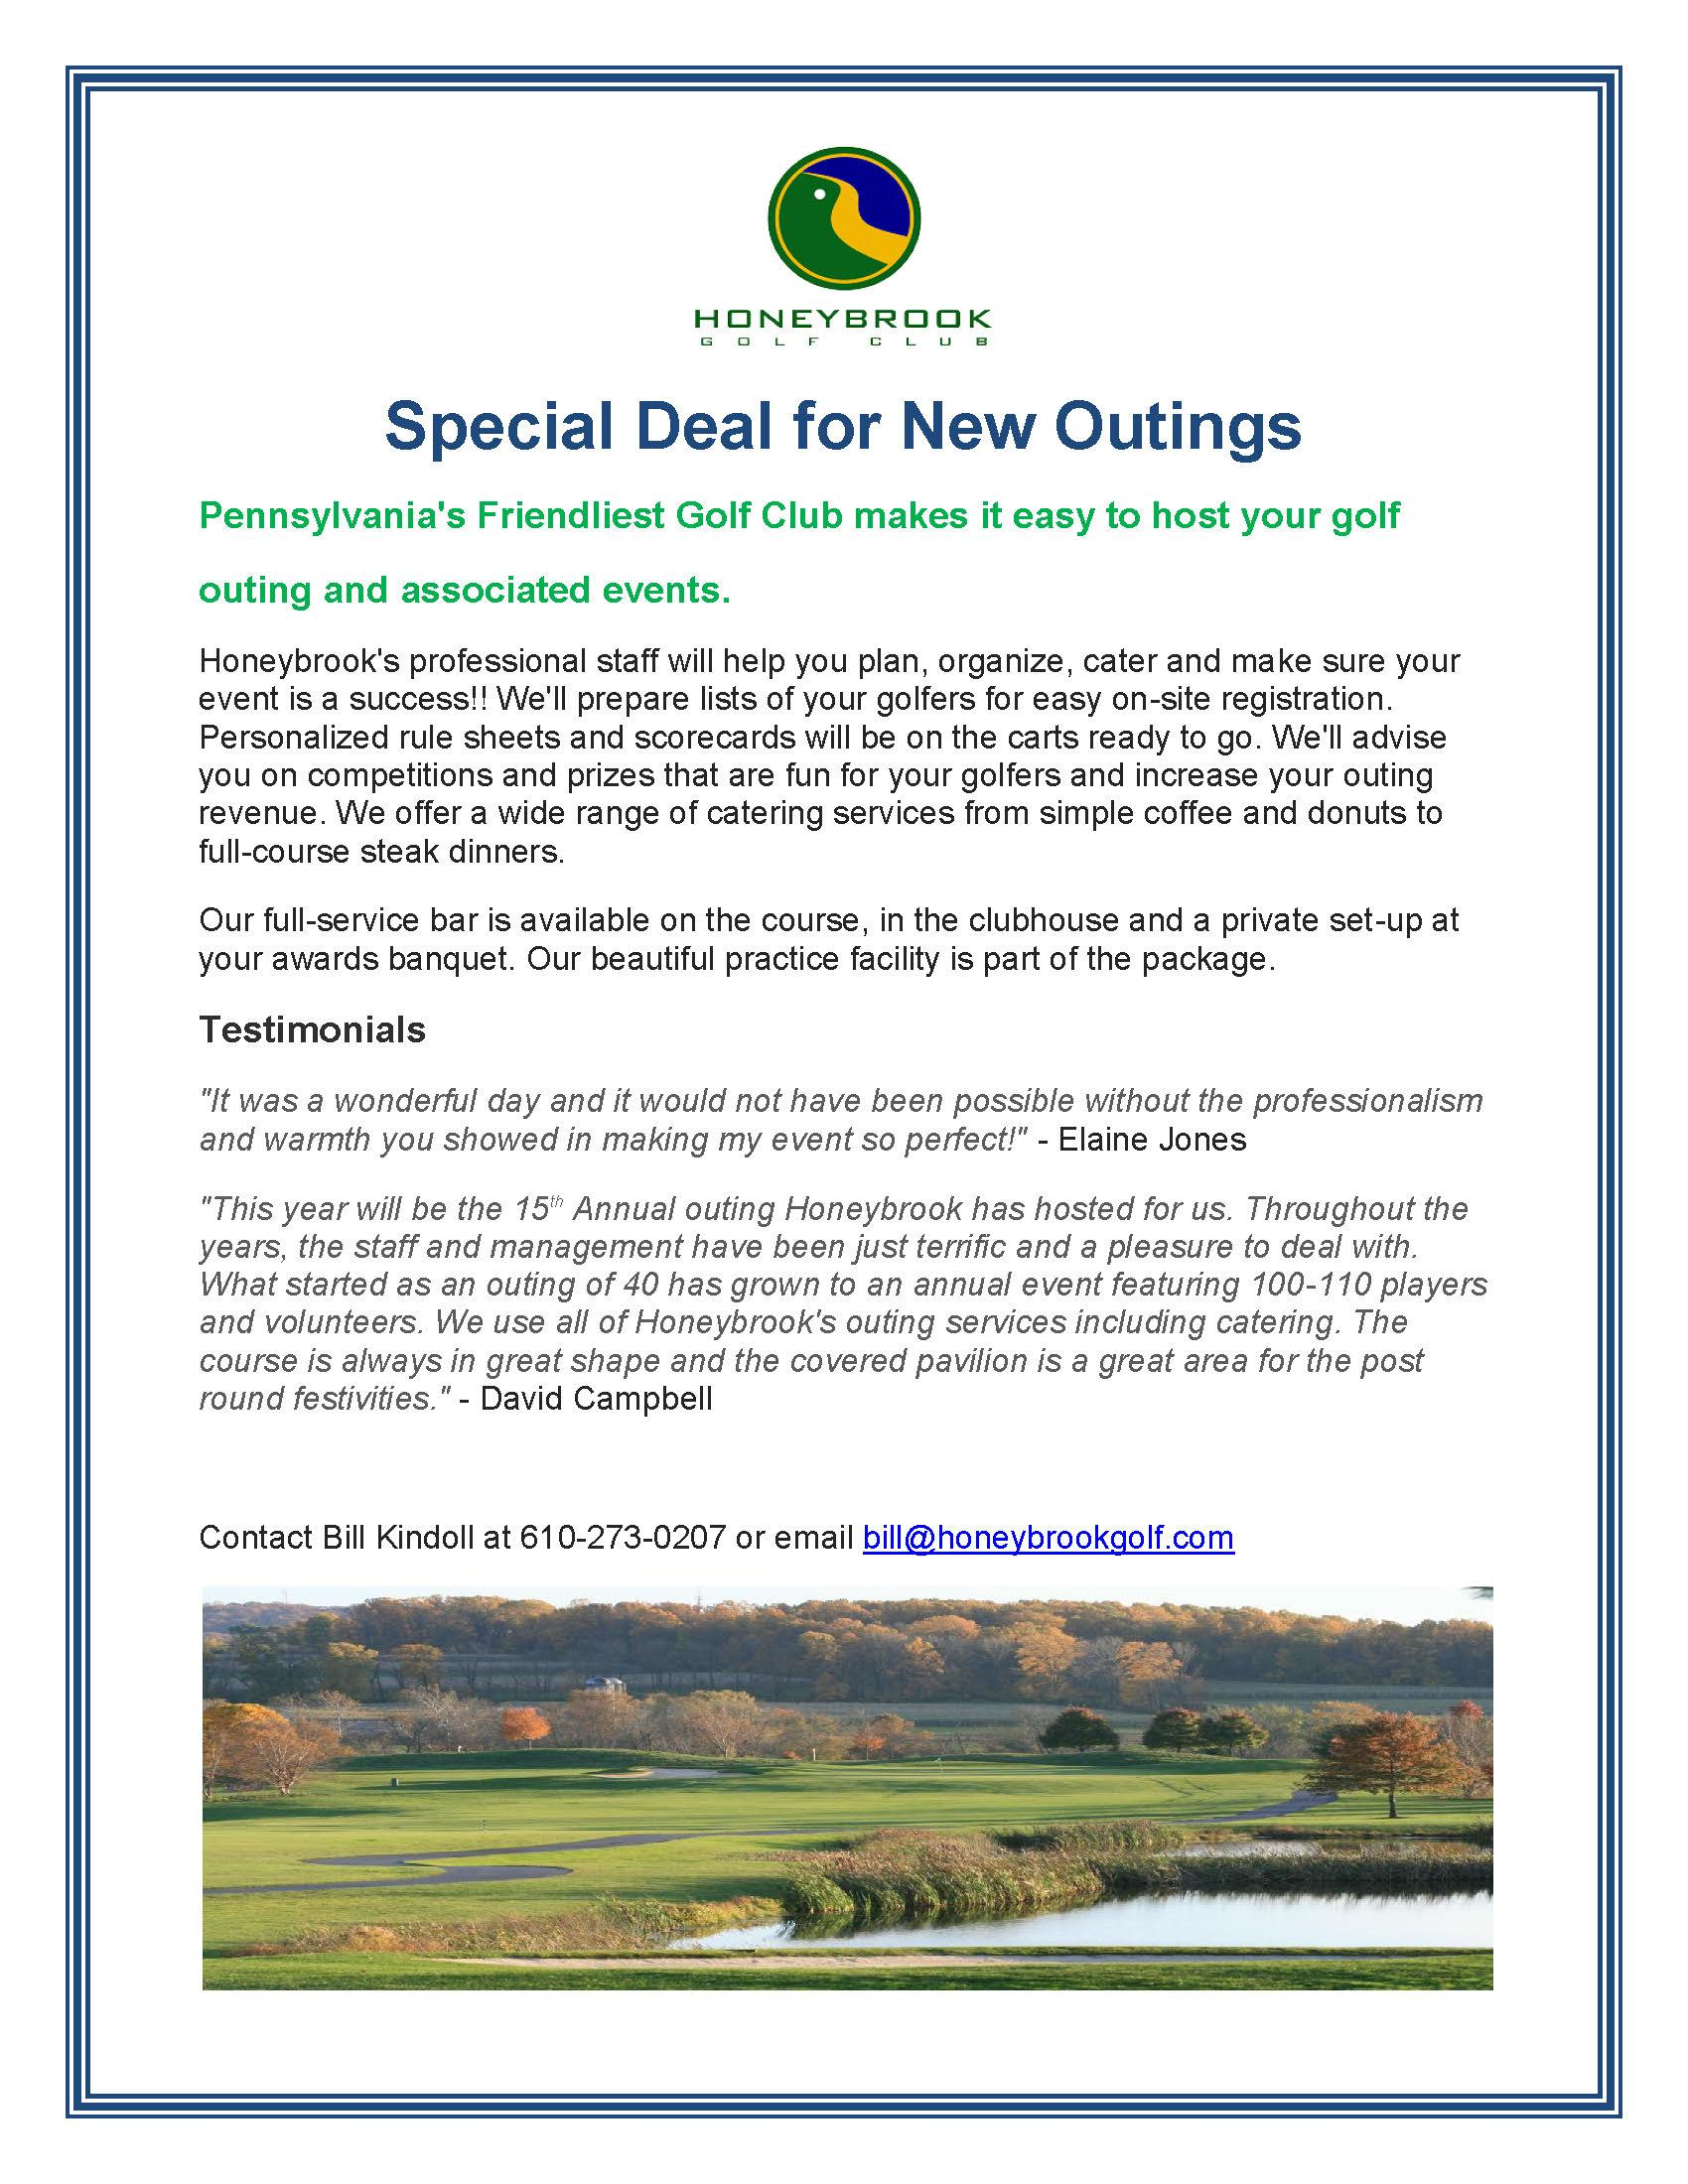 Special New Outing Deal Page 1